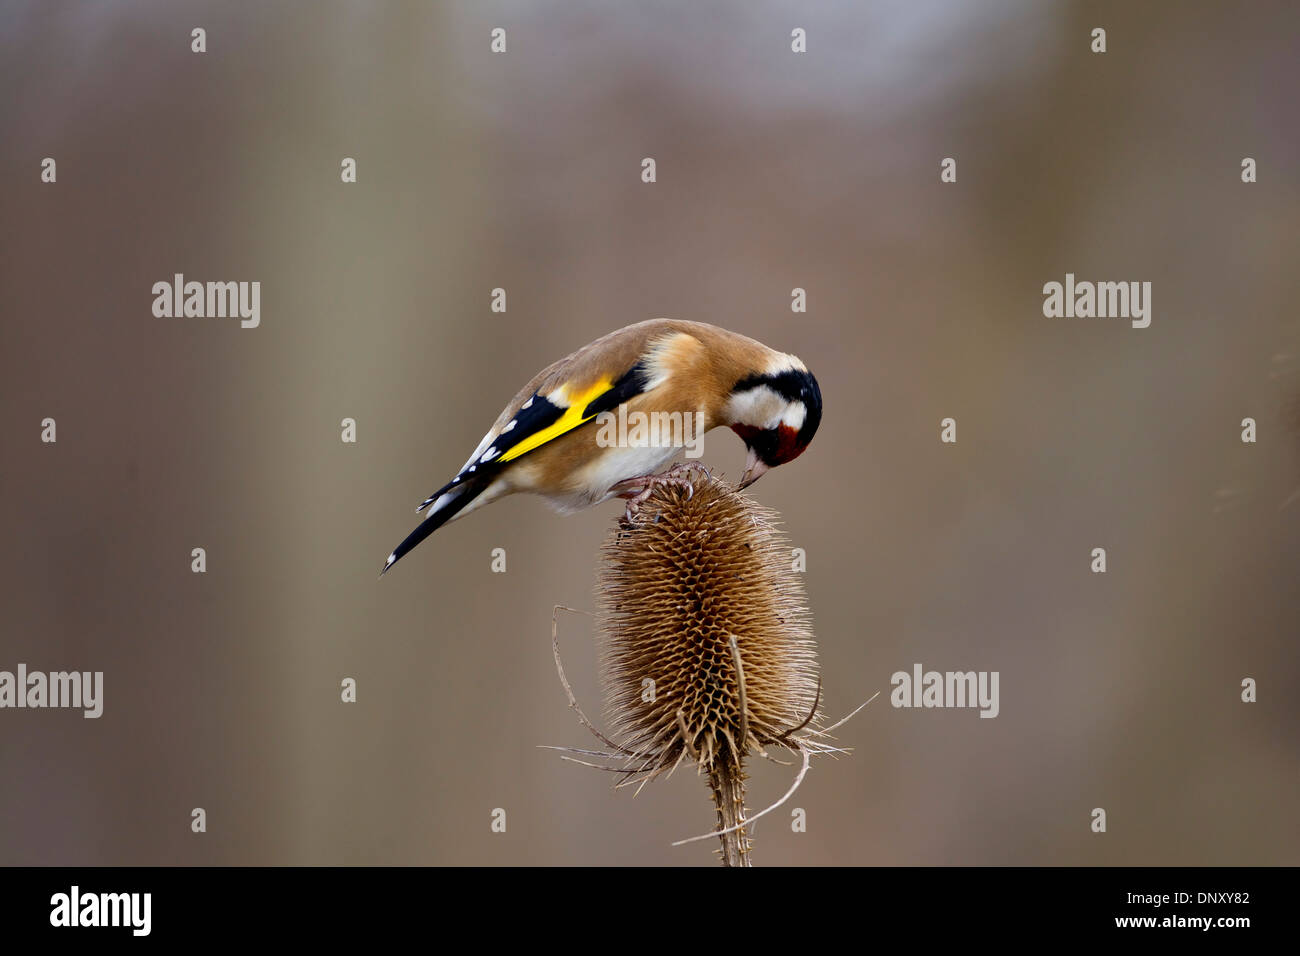 Goldfinch Carduelis Carduelis in profile eating seed from a teasel head - Stock Image